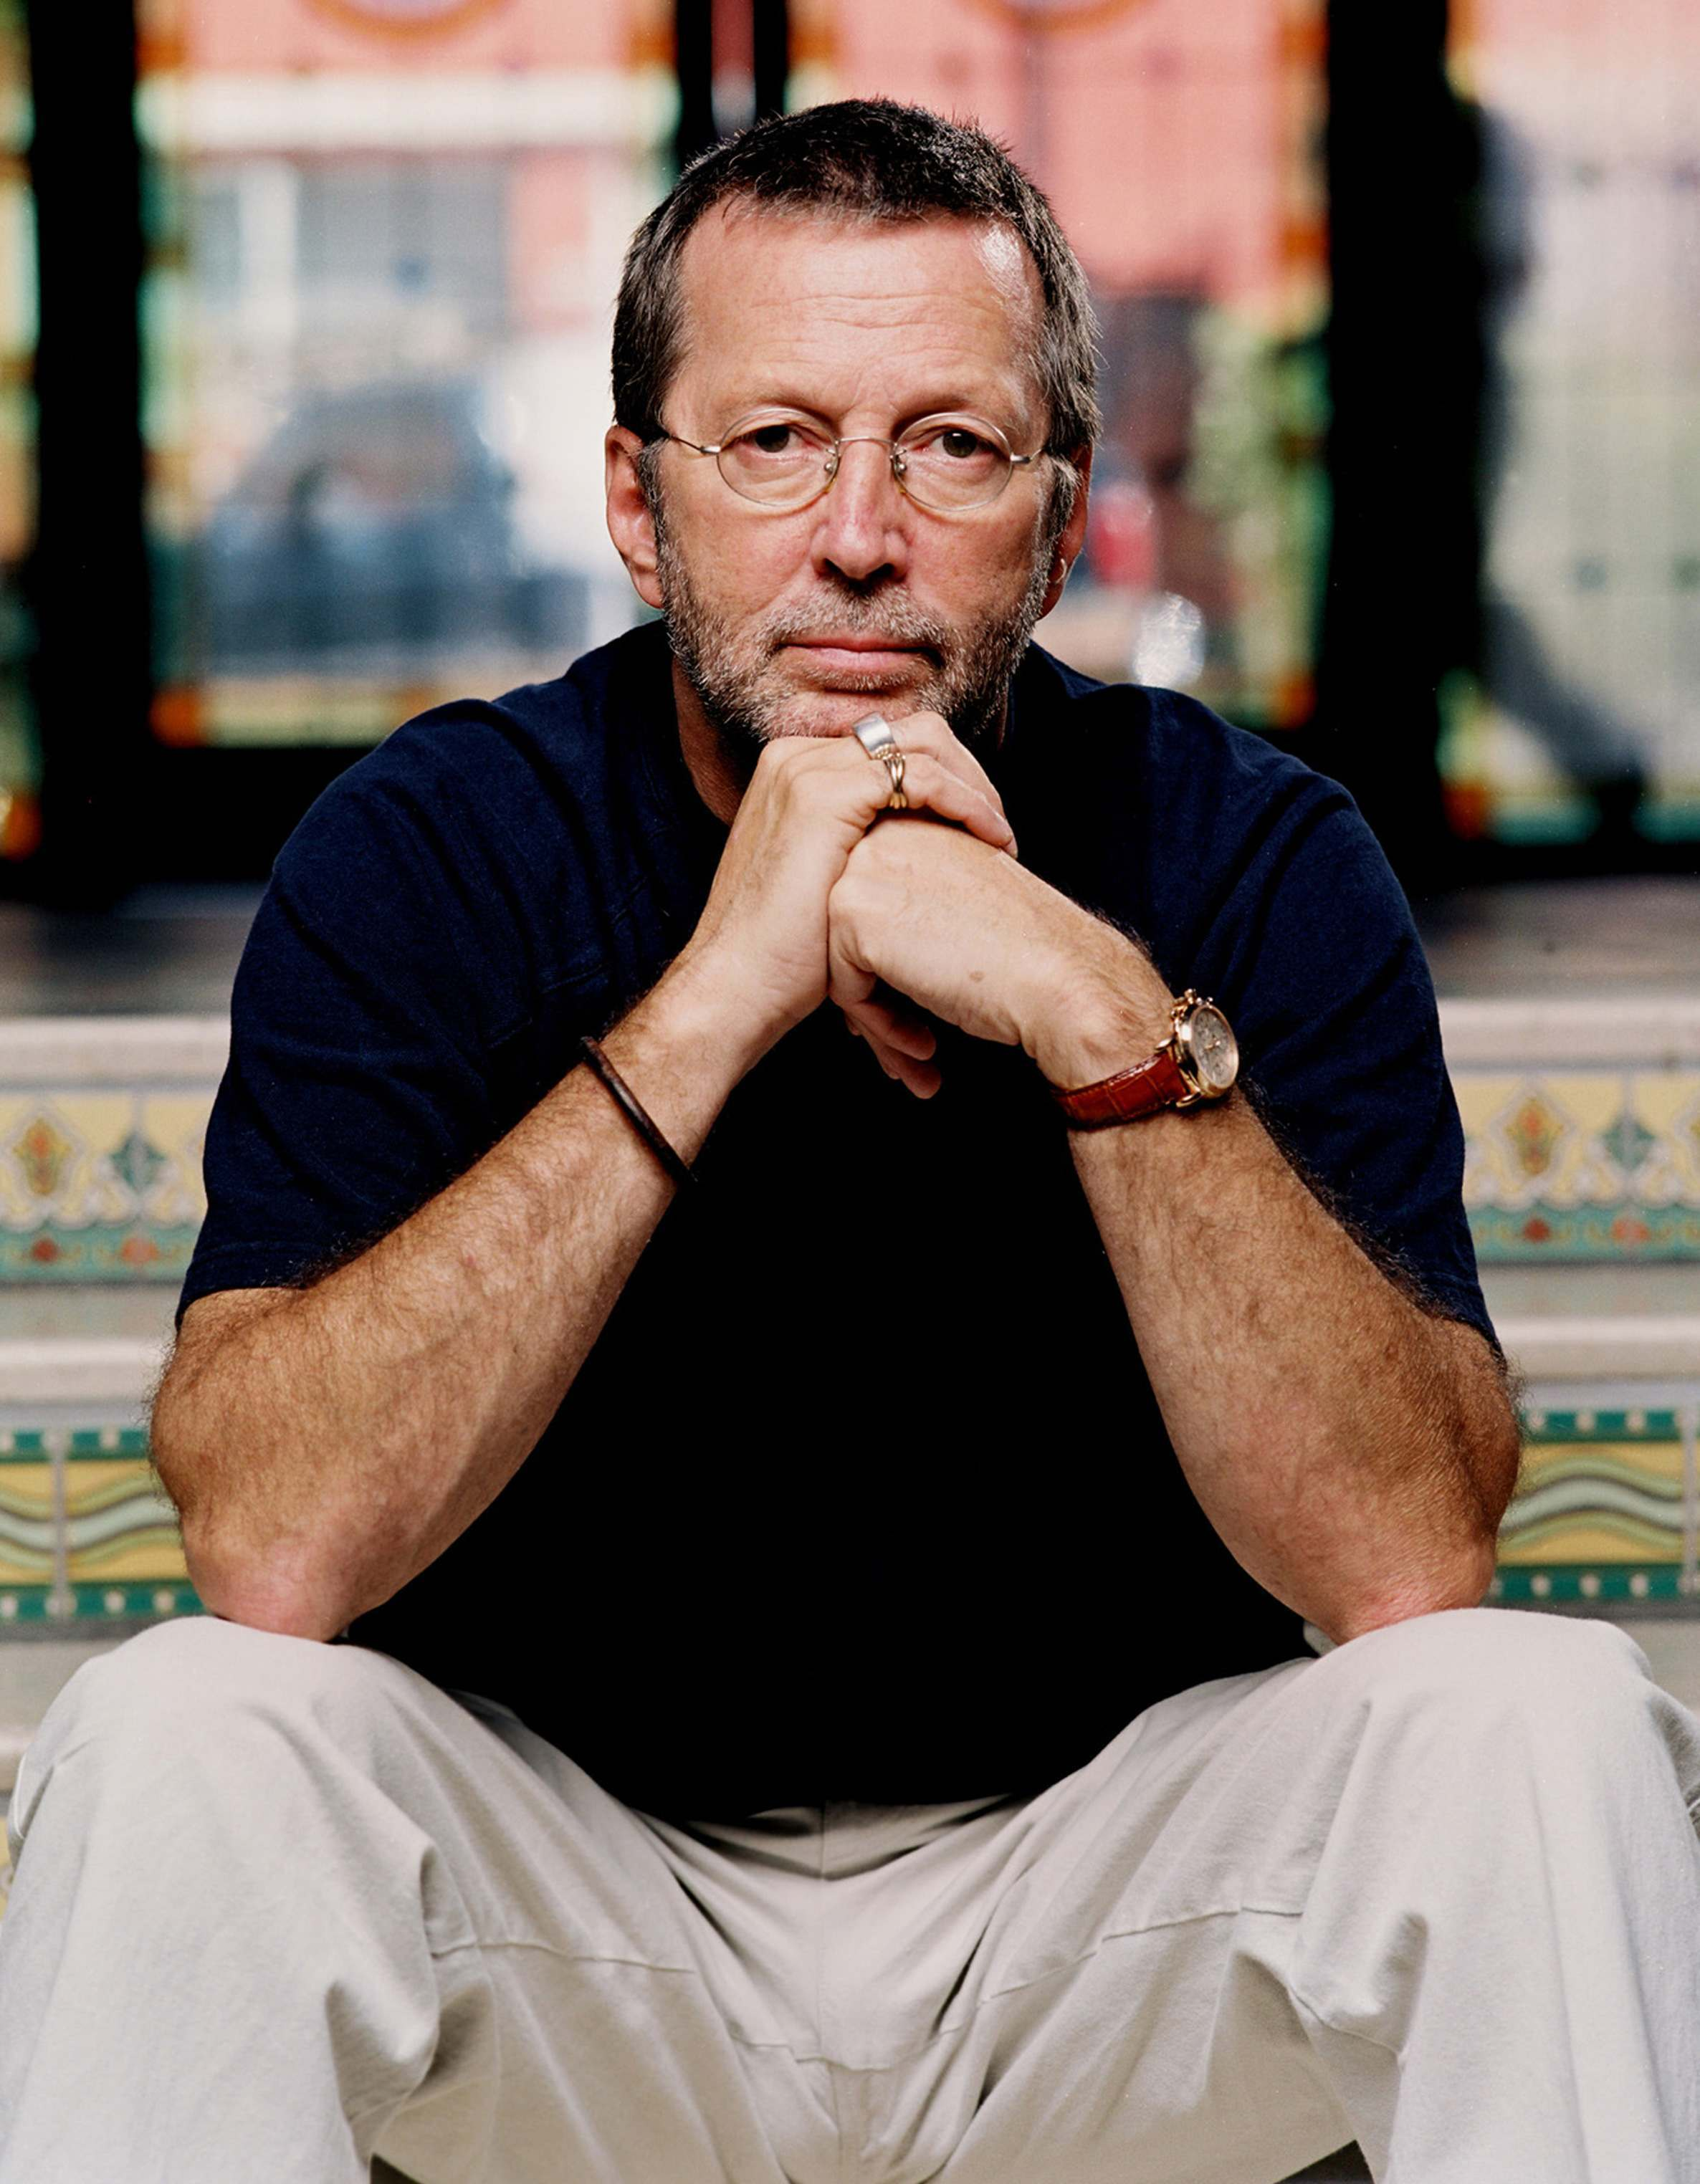 JOINT MD ERIC CLAPTON